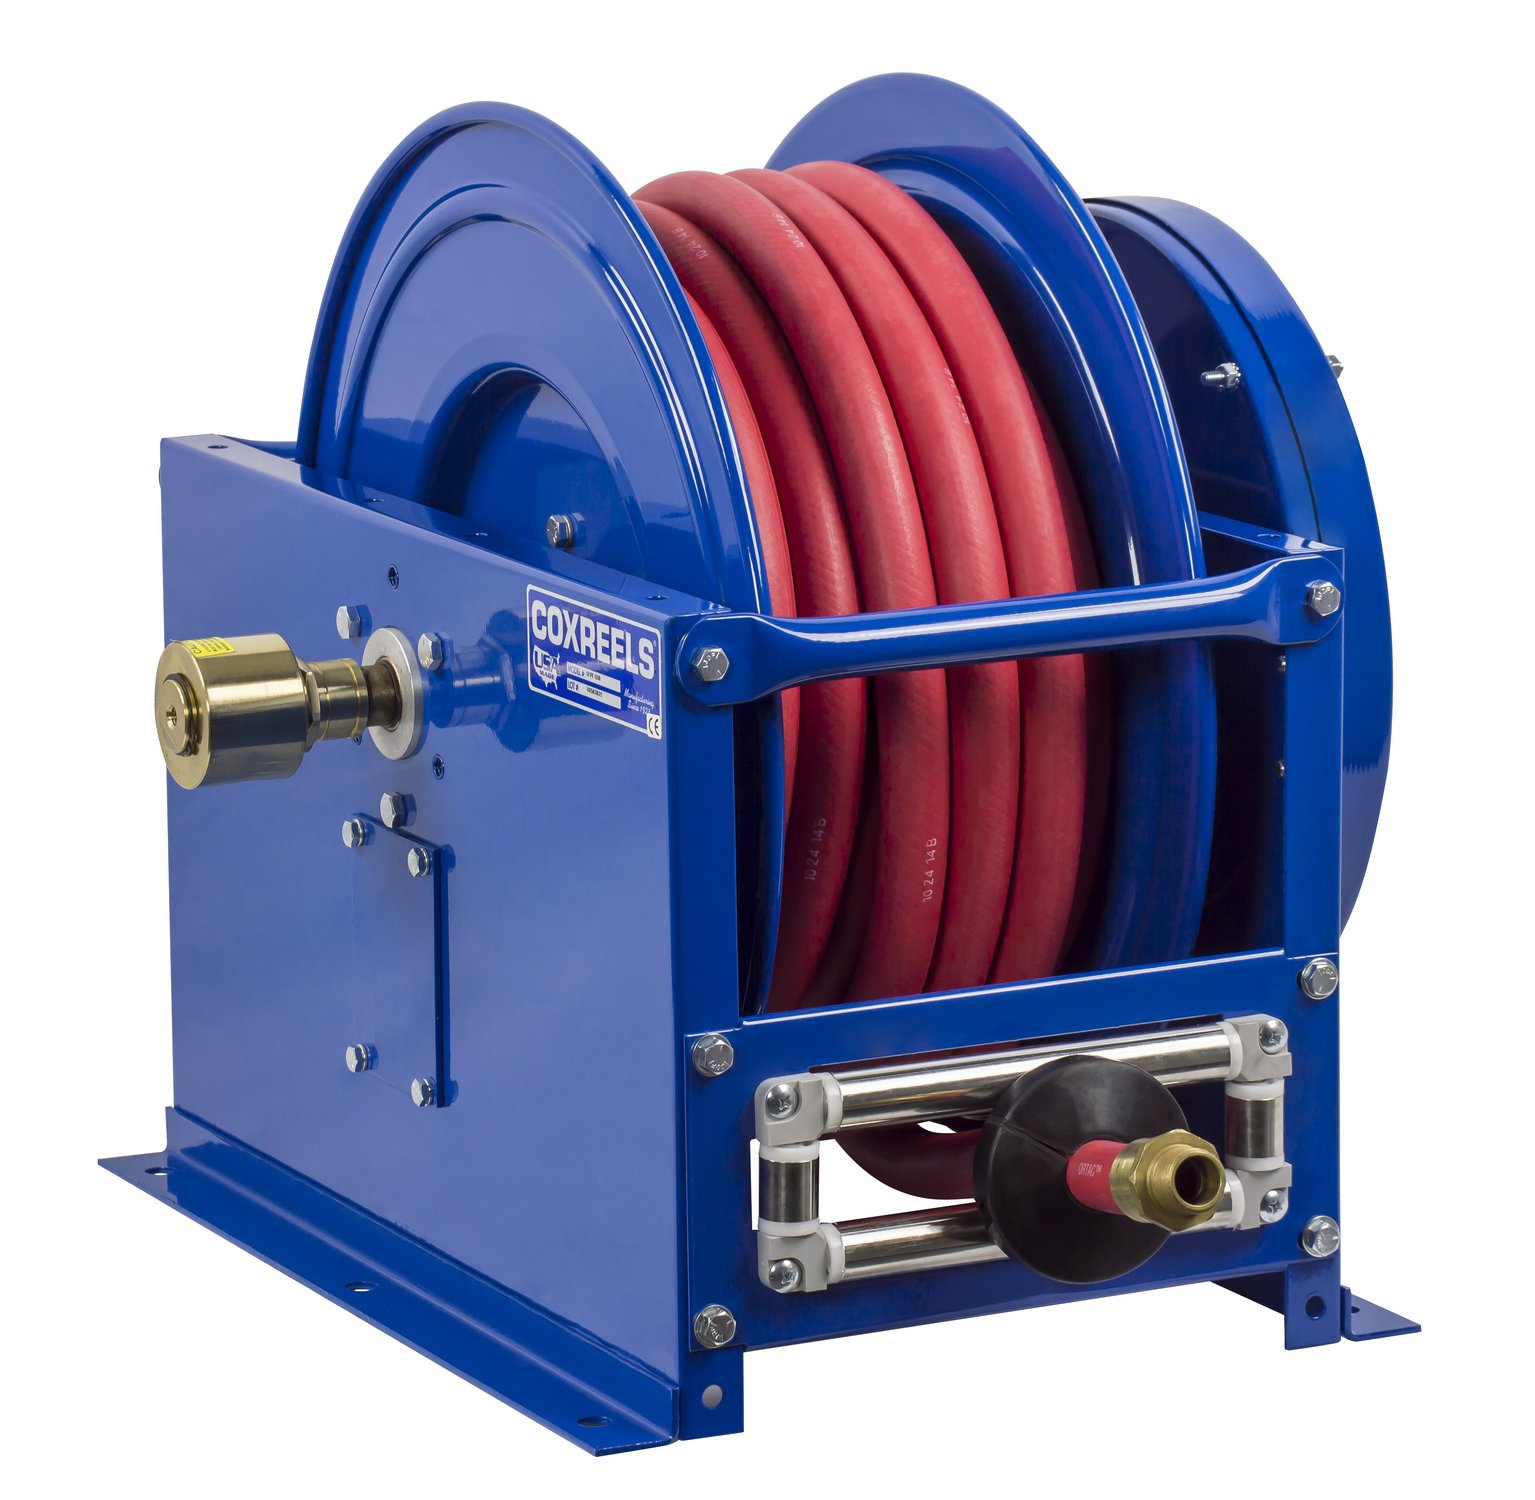 Coxreels SLPL-650 Single Hose Spring Rewind: 1'' I.D., 50' hose capacity, less hose, 300 PSI